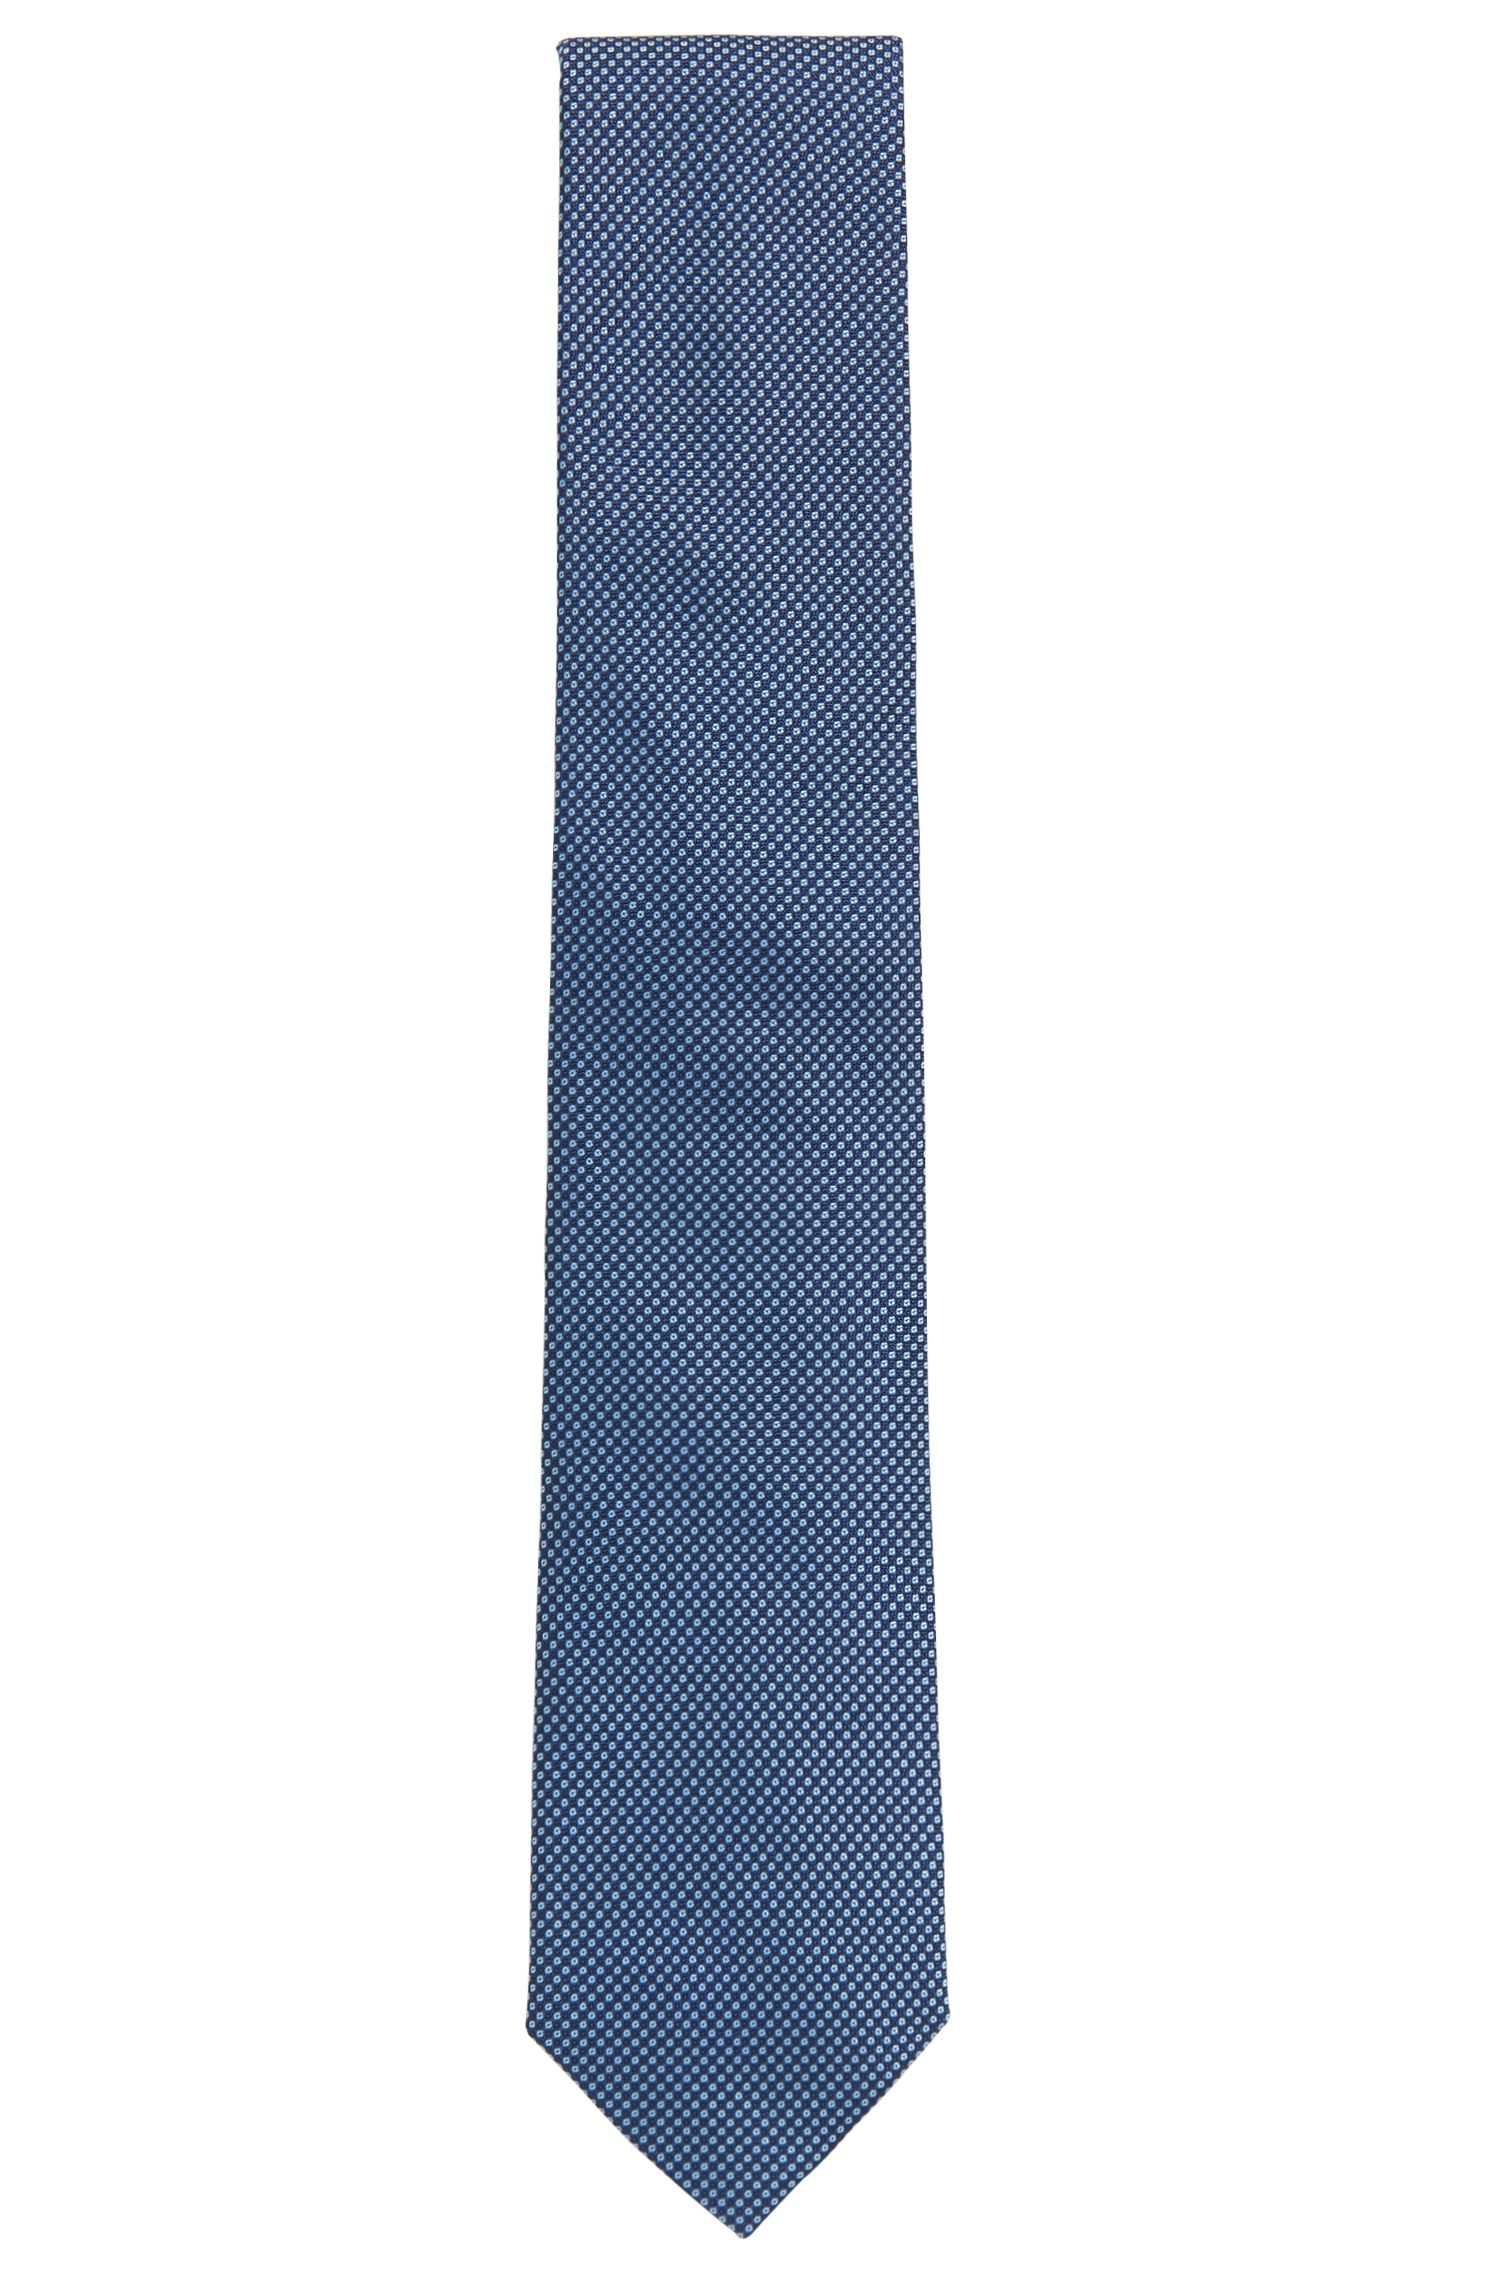 Italian-made tie in patterned silk jacquard